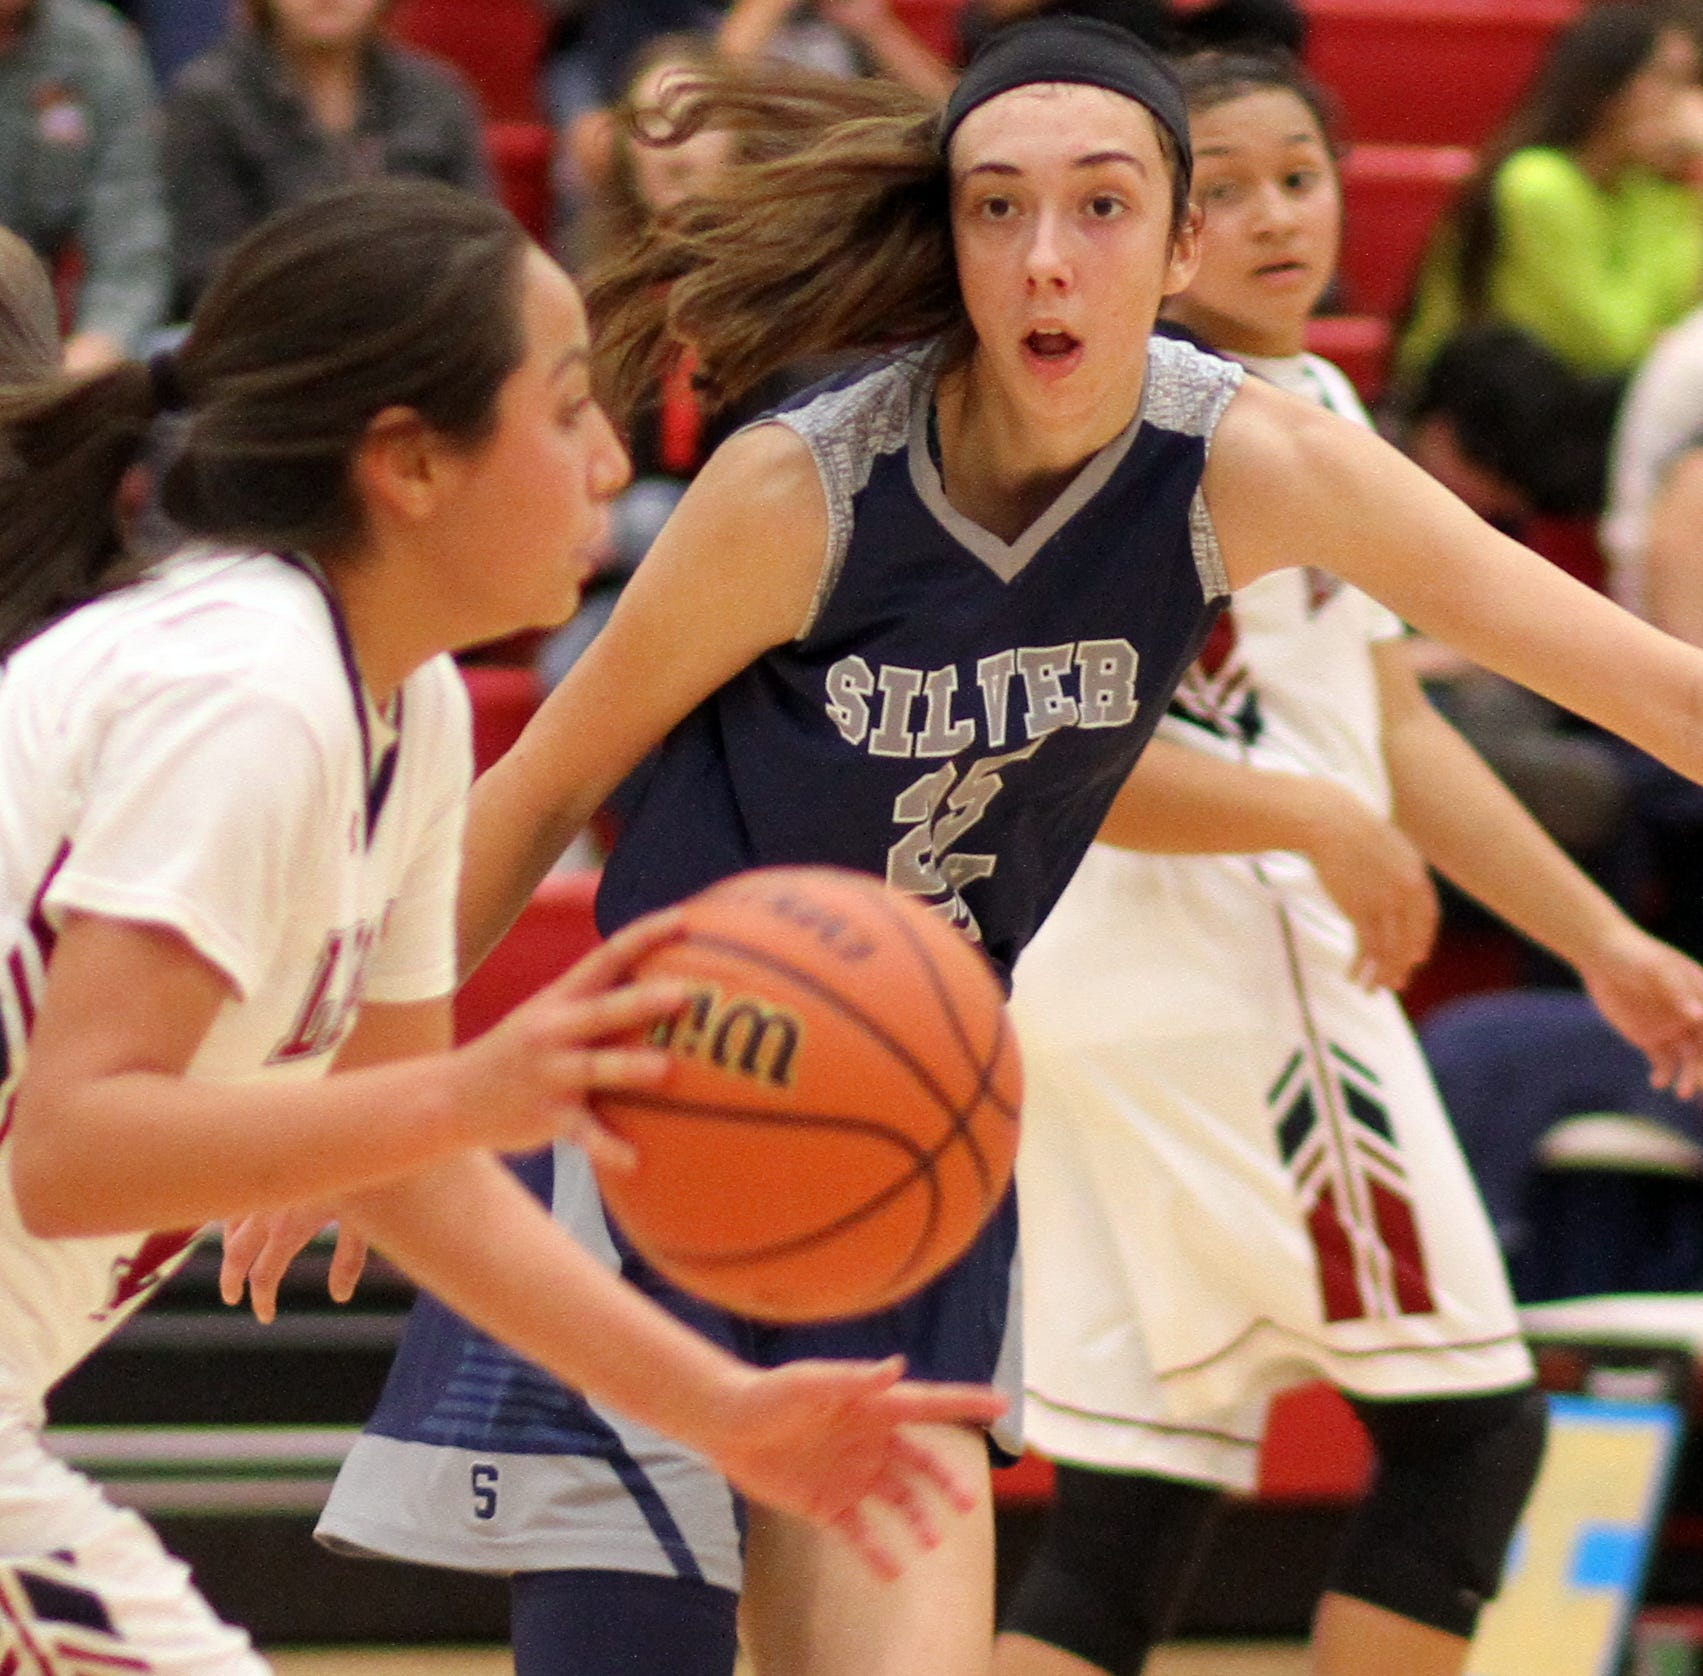 Silver High girls fall to Deming